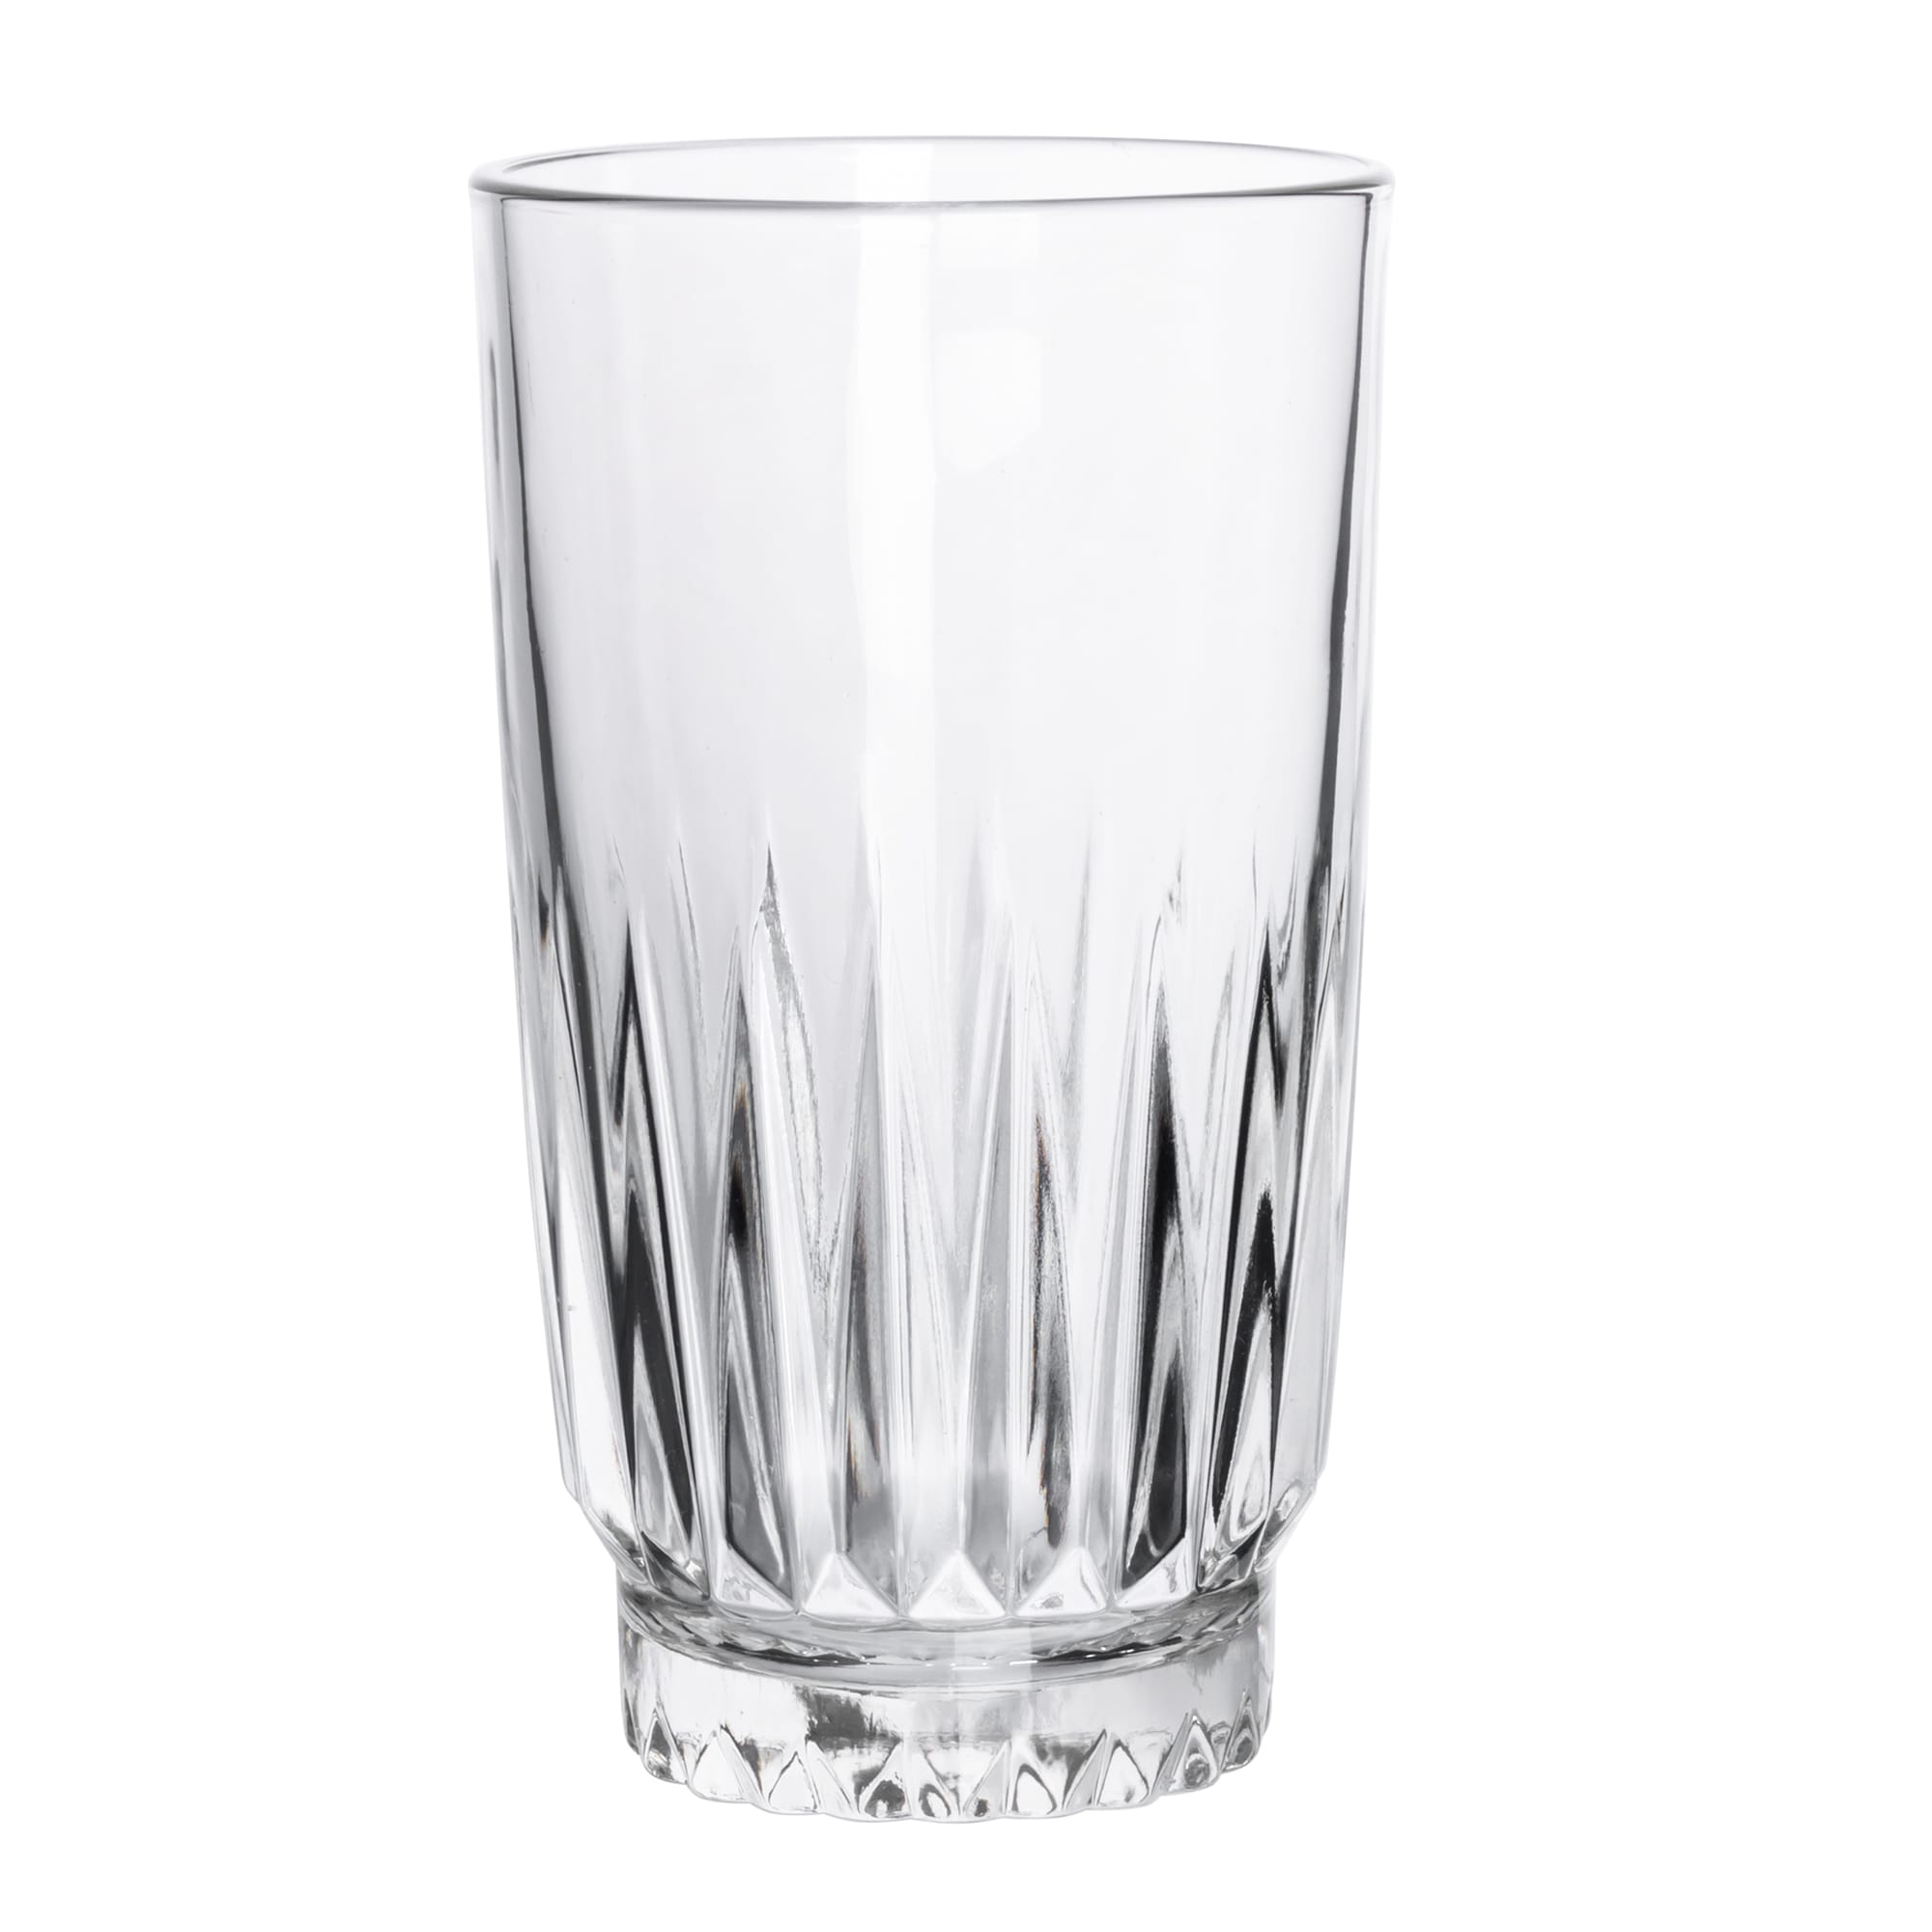 Libbey 15459 16 oz DuraTuff Winchester Cooler Glass